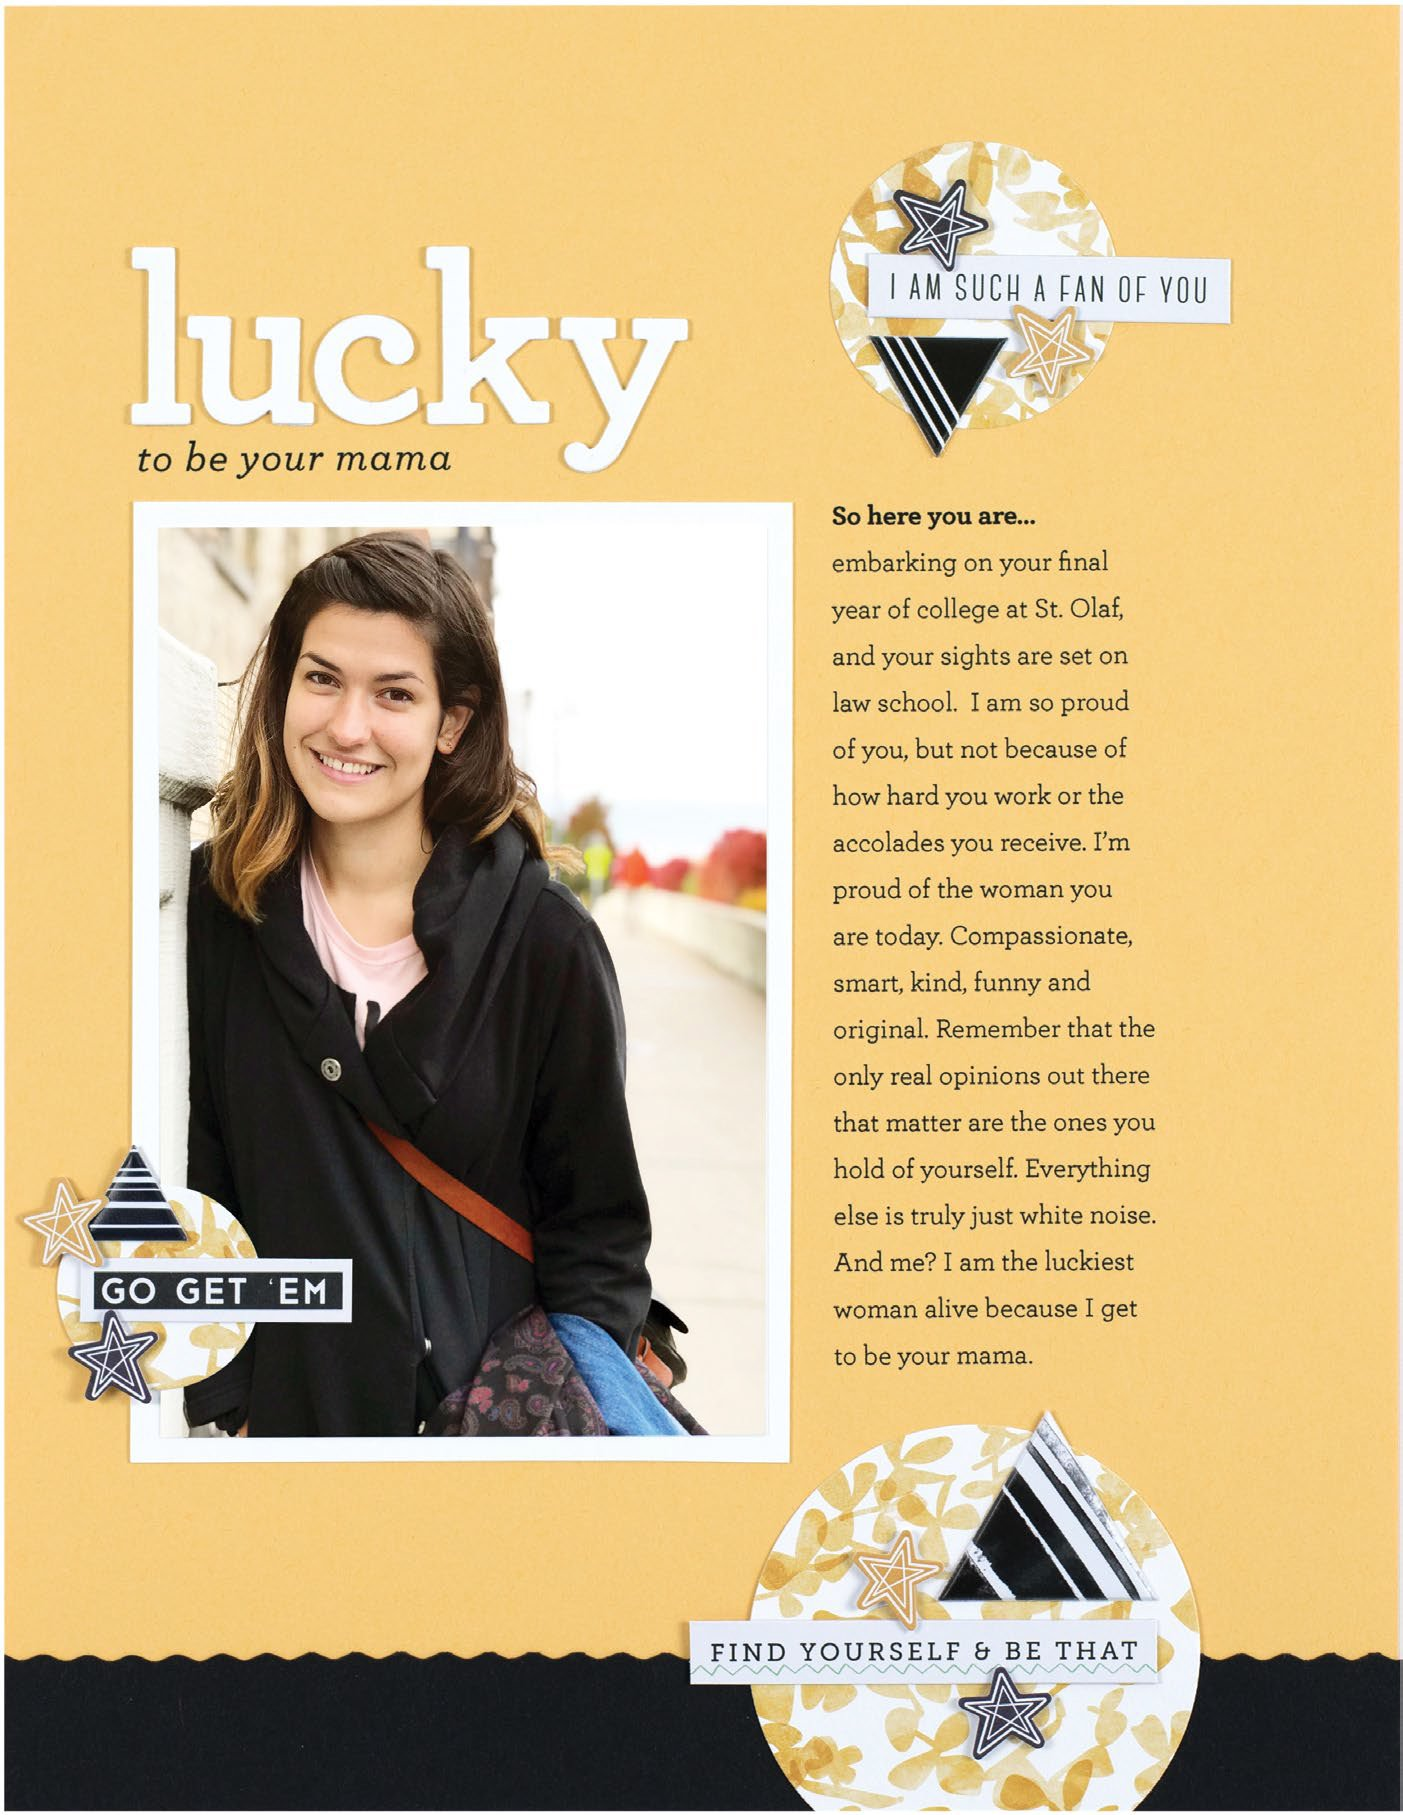 Lucky by Cathy Zielske - Scrapbook & Cards Today Spring 2018